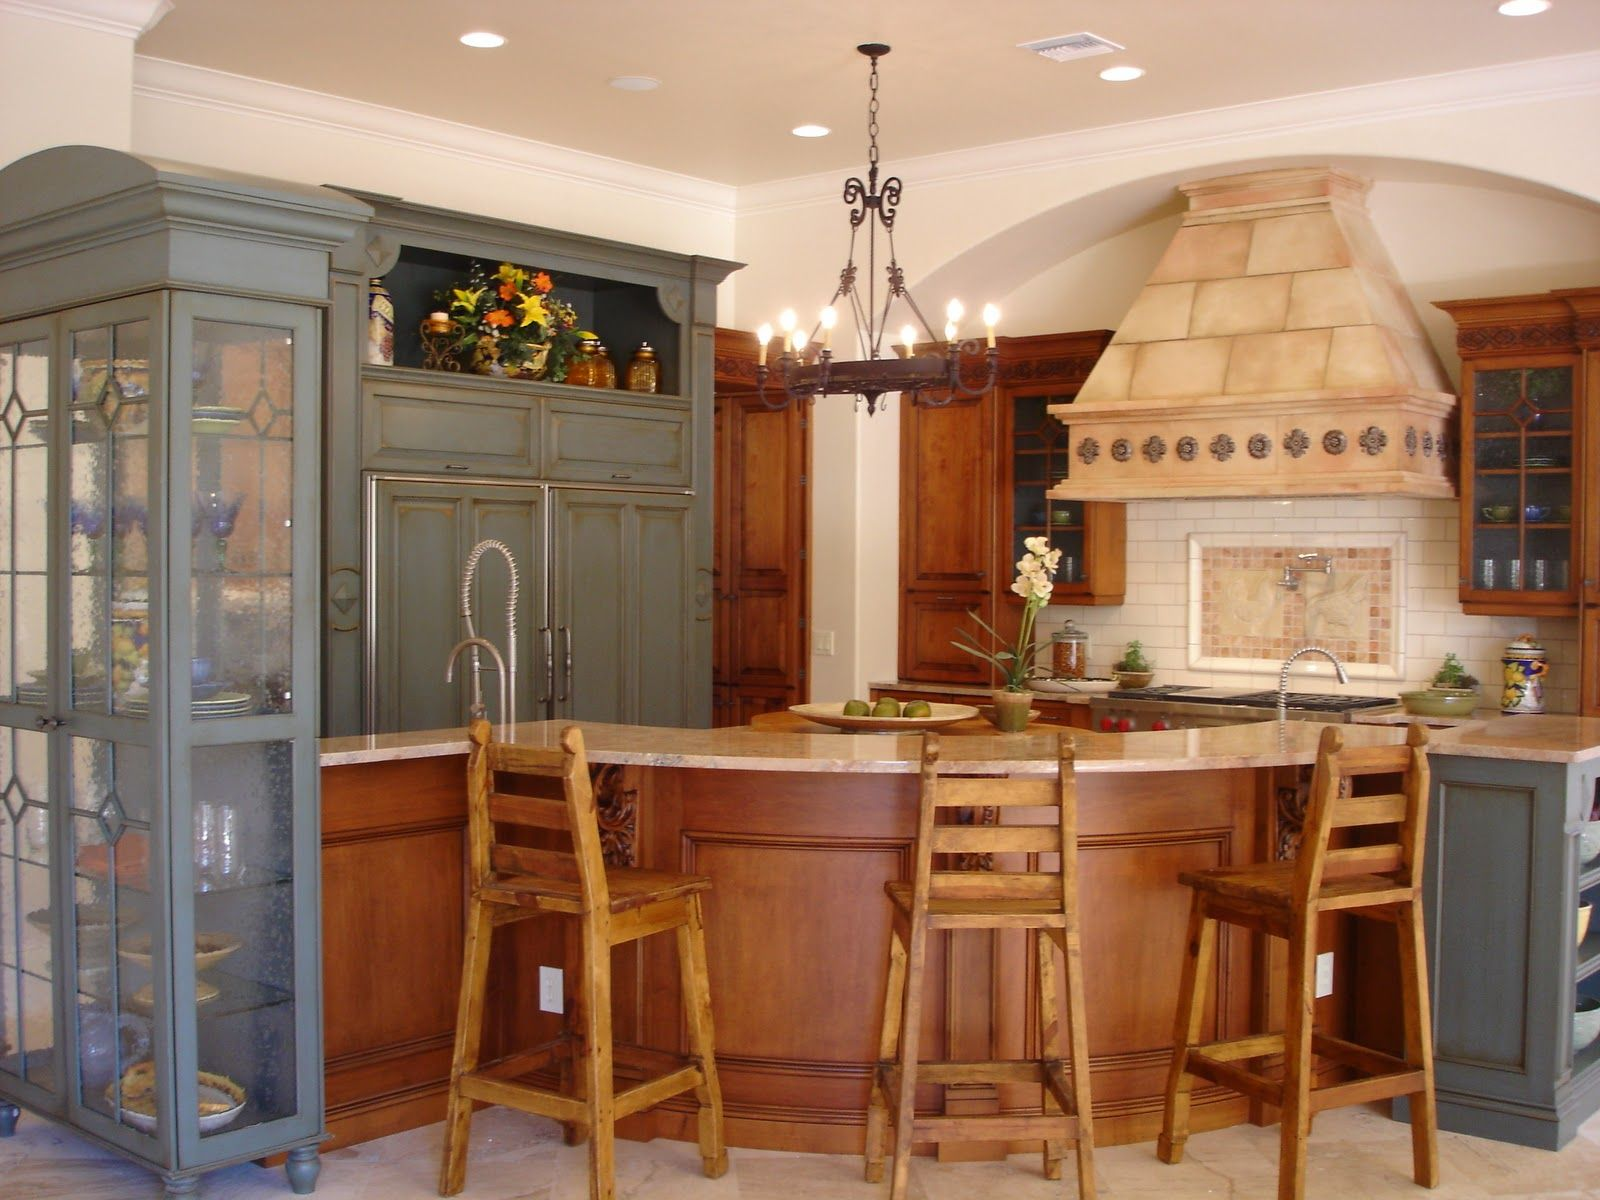 Ethnic touch for simple colonial style kitchen with wooden furniture